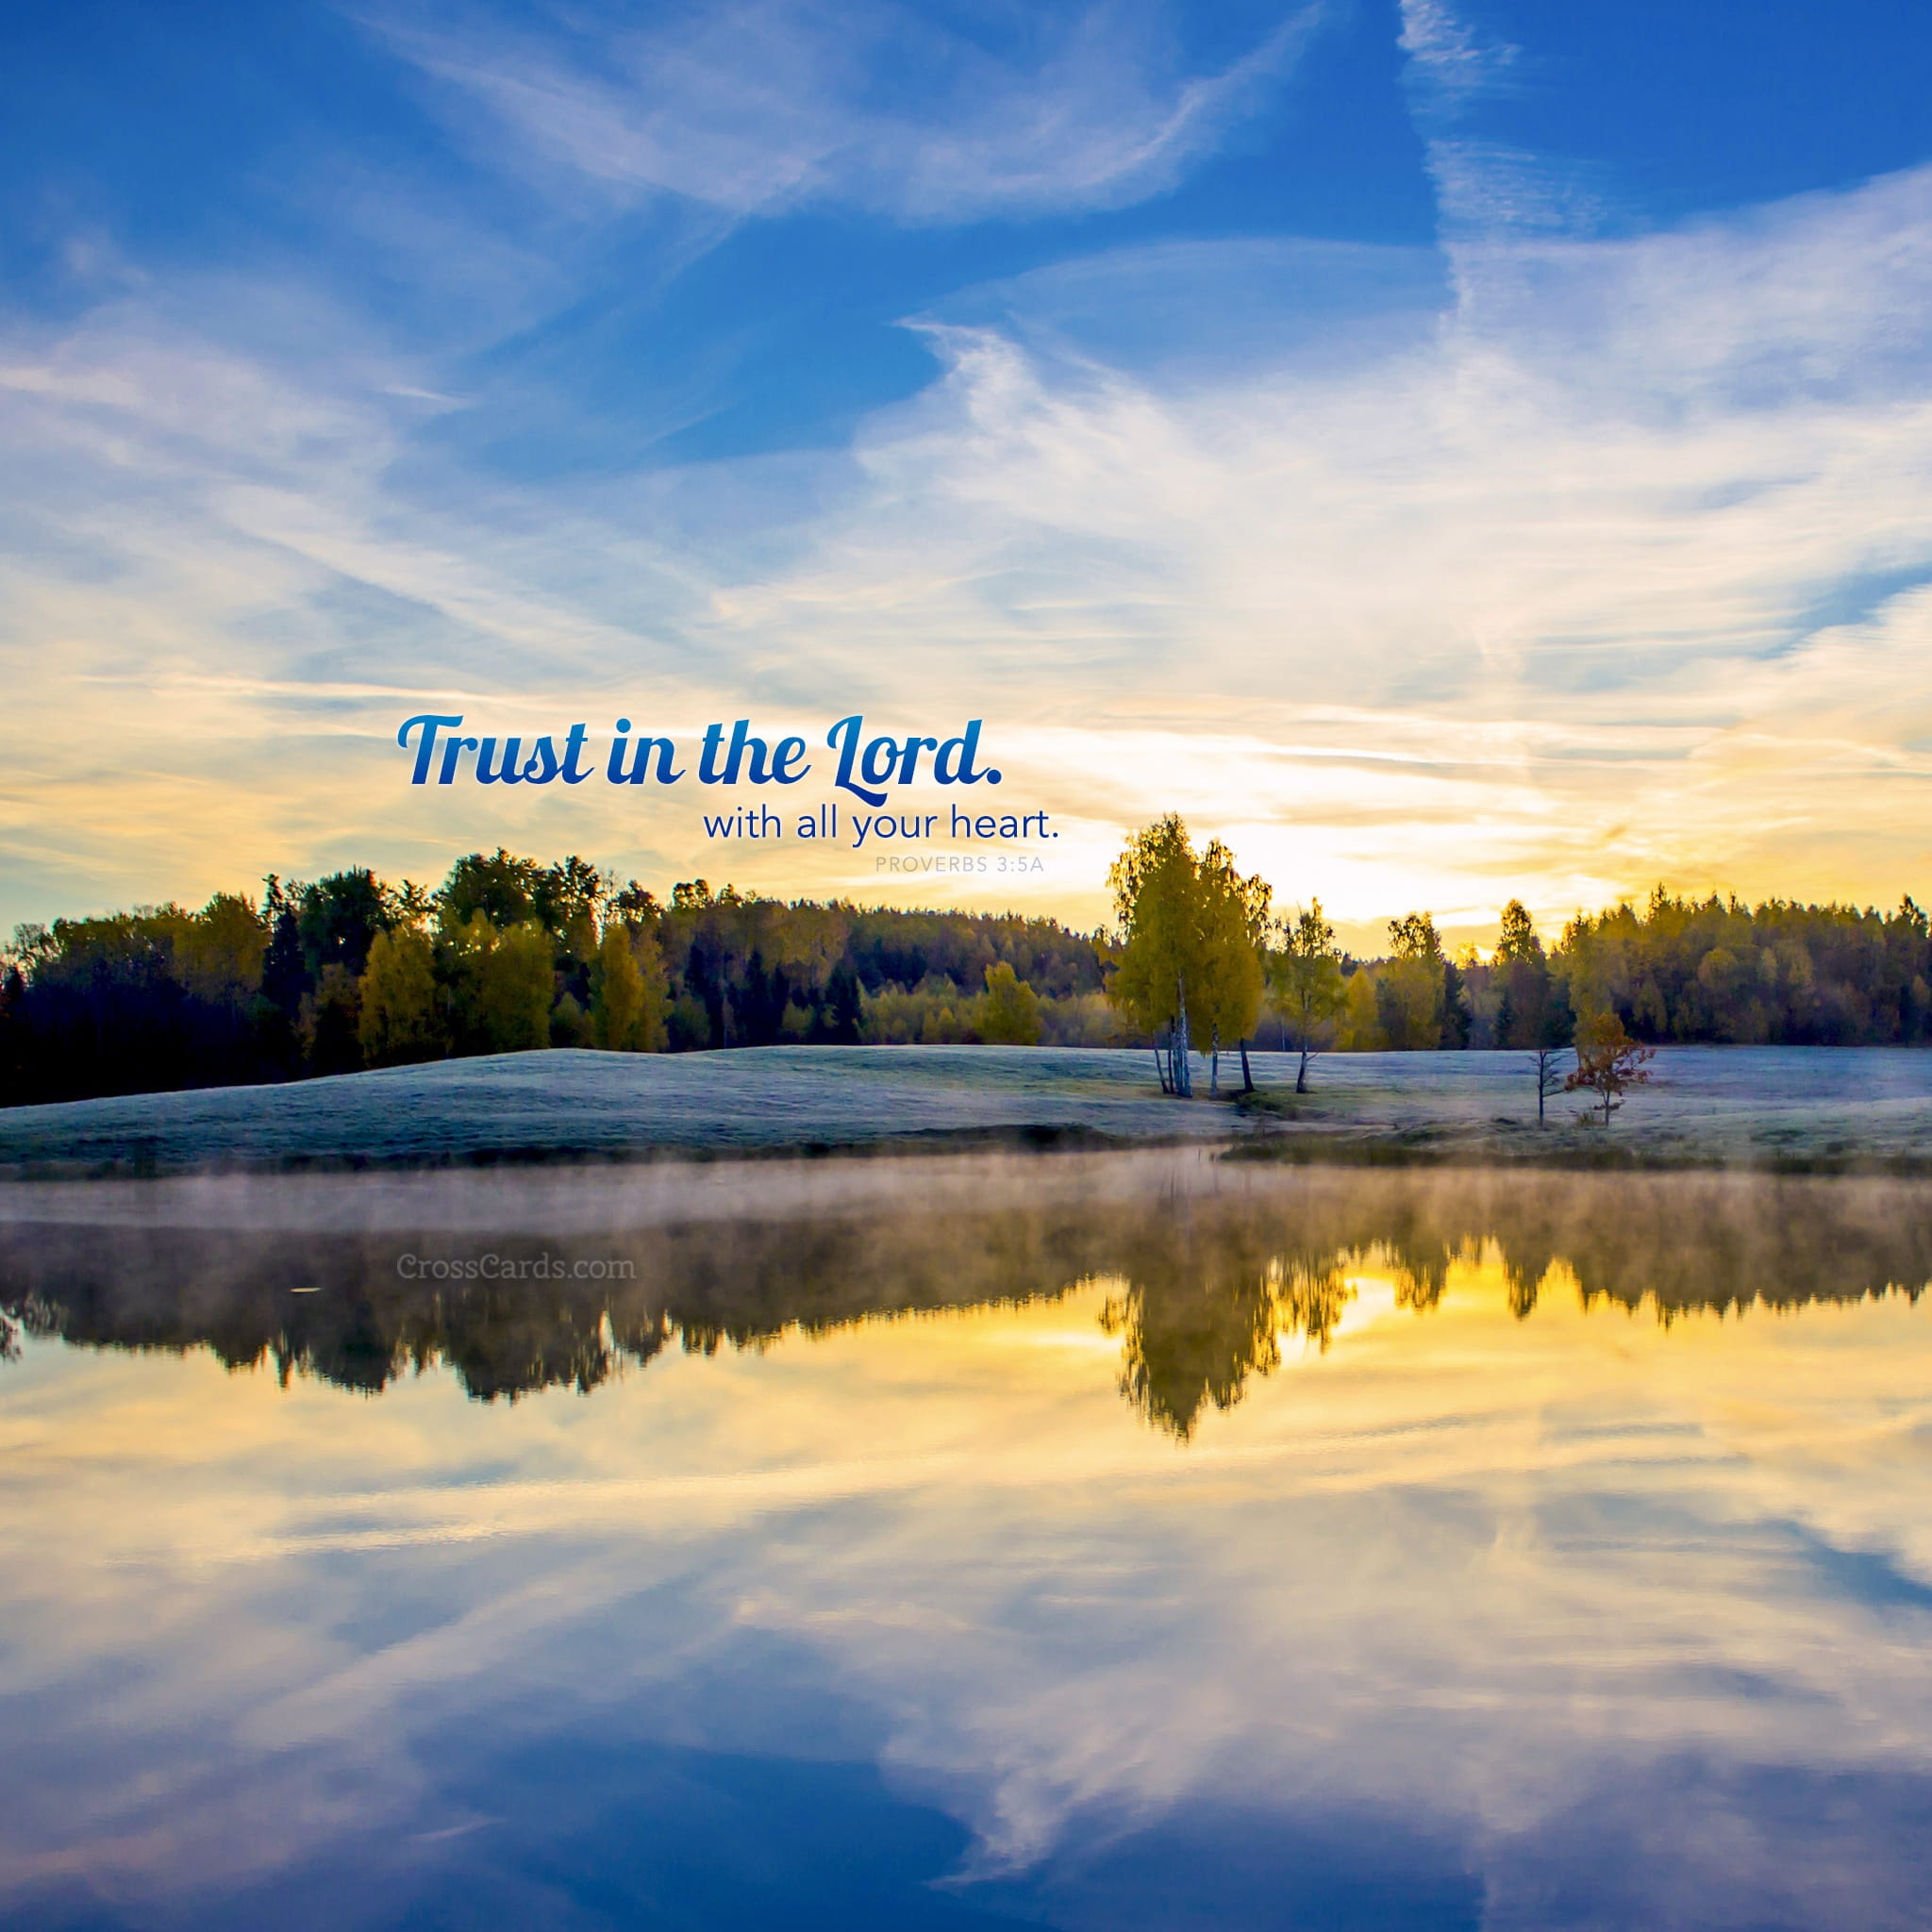 Calendar Wallpaper Ipad : November trust in the lord desktop calendar free